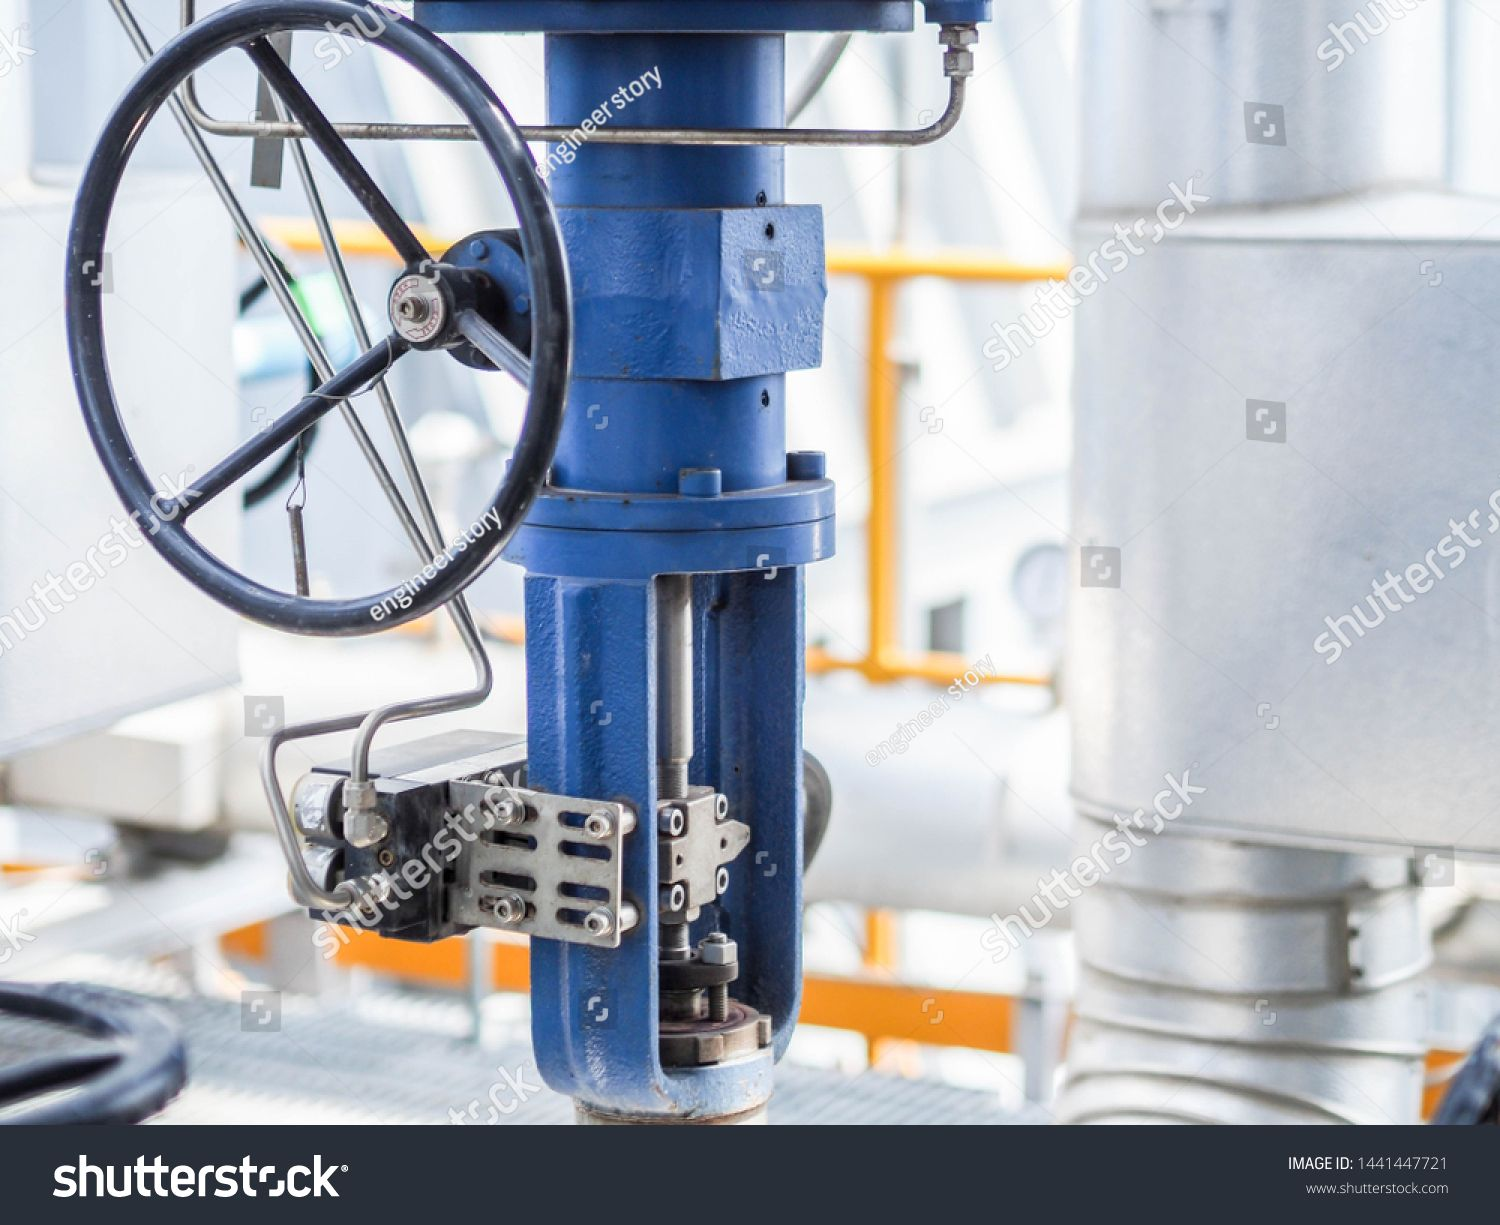 Control valve for control flow and pressure of process